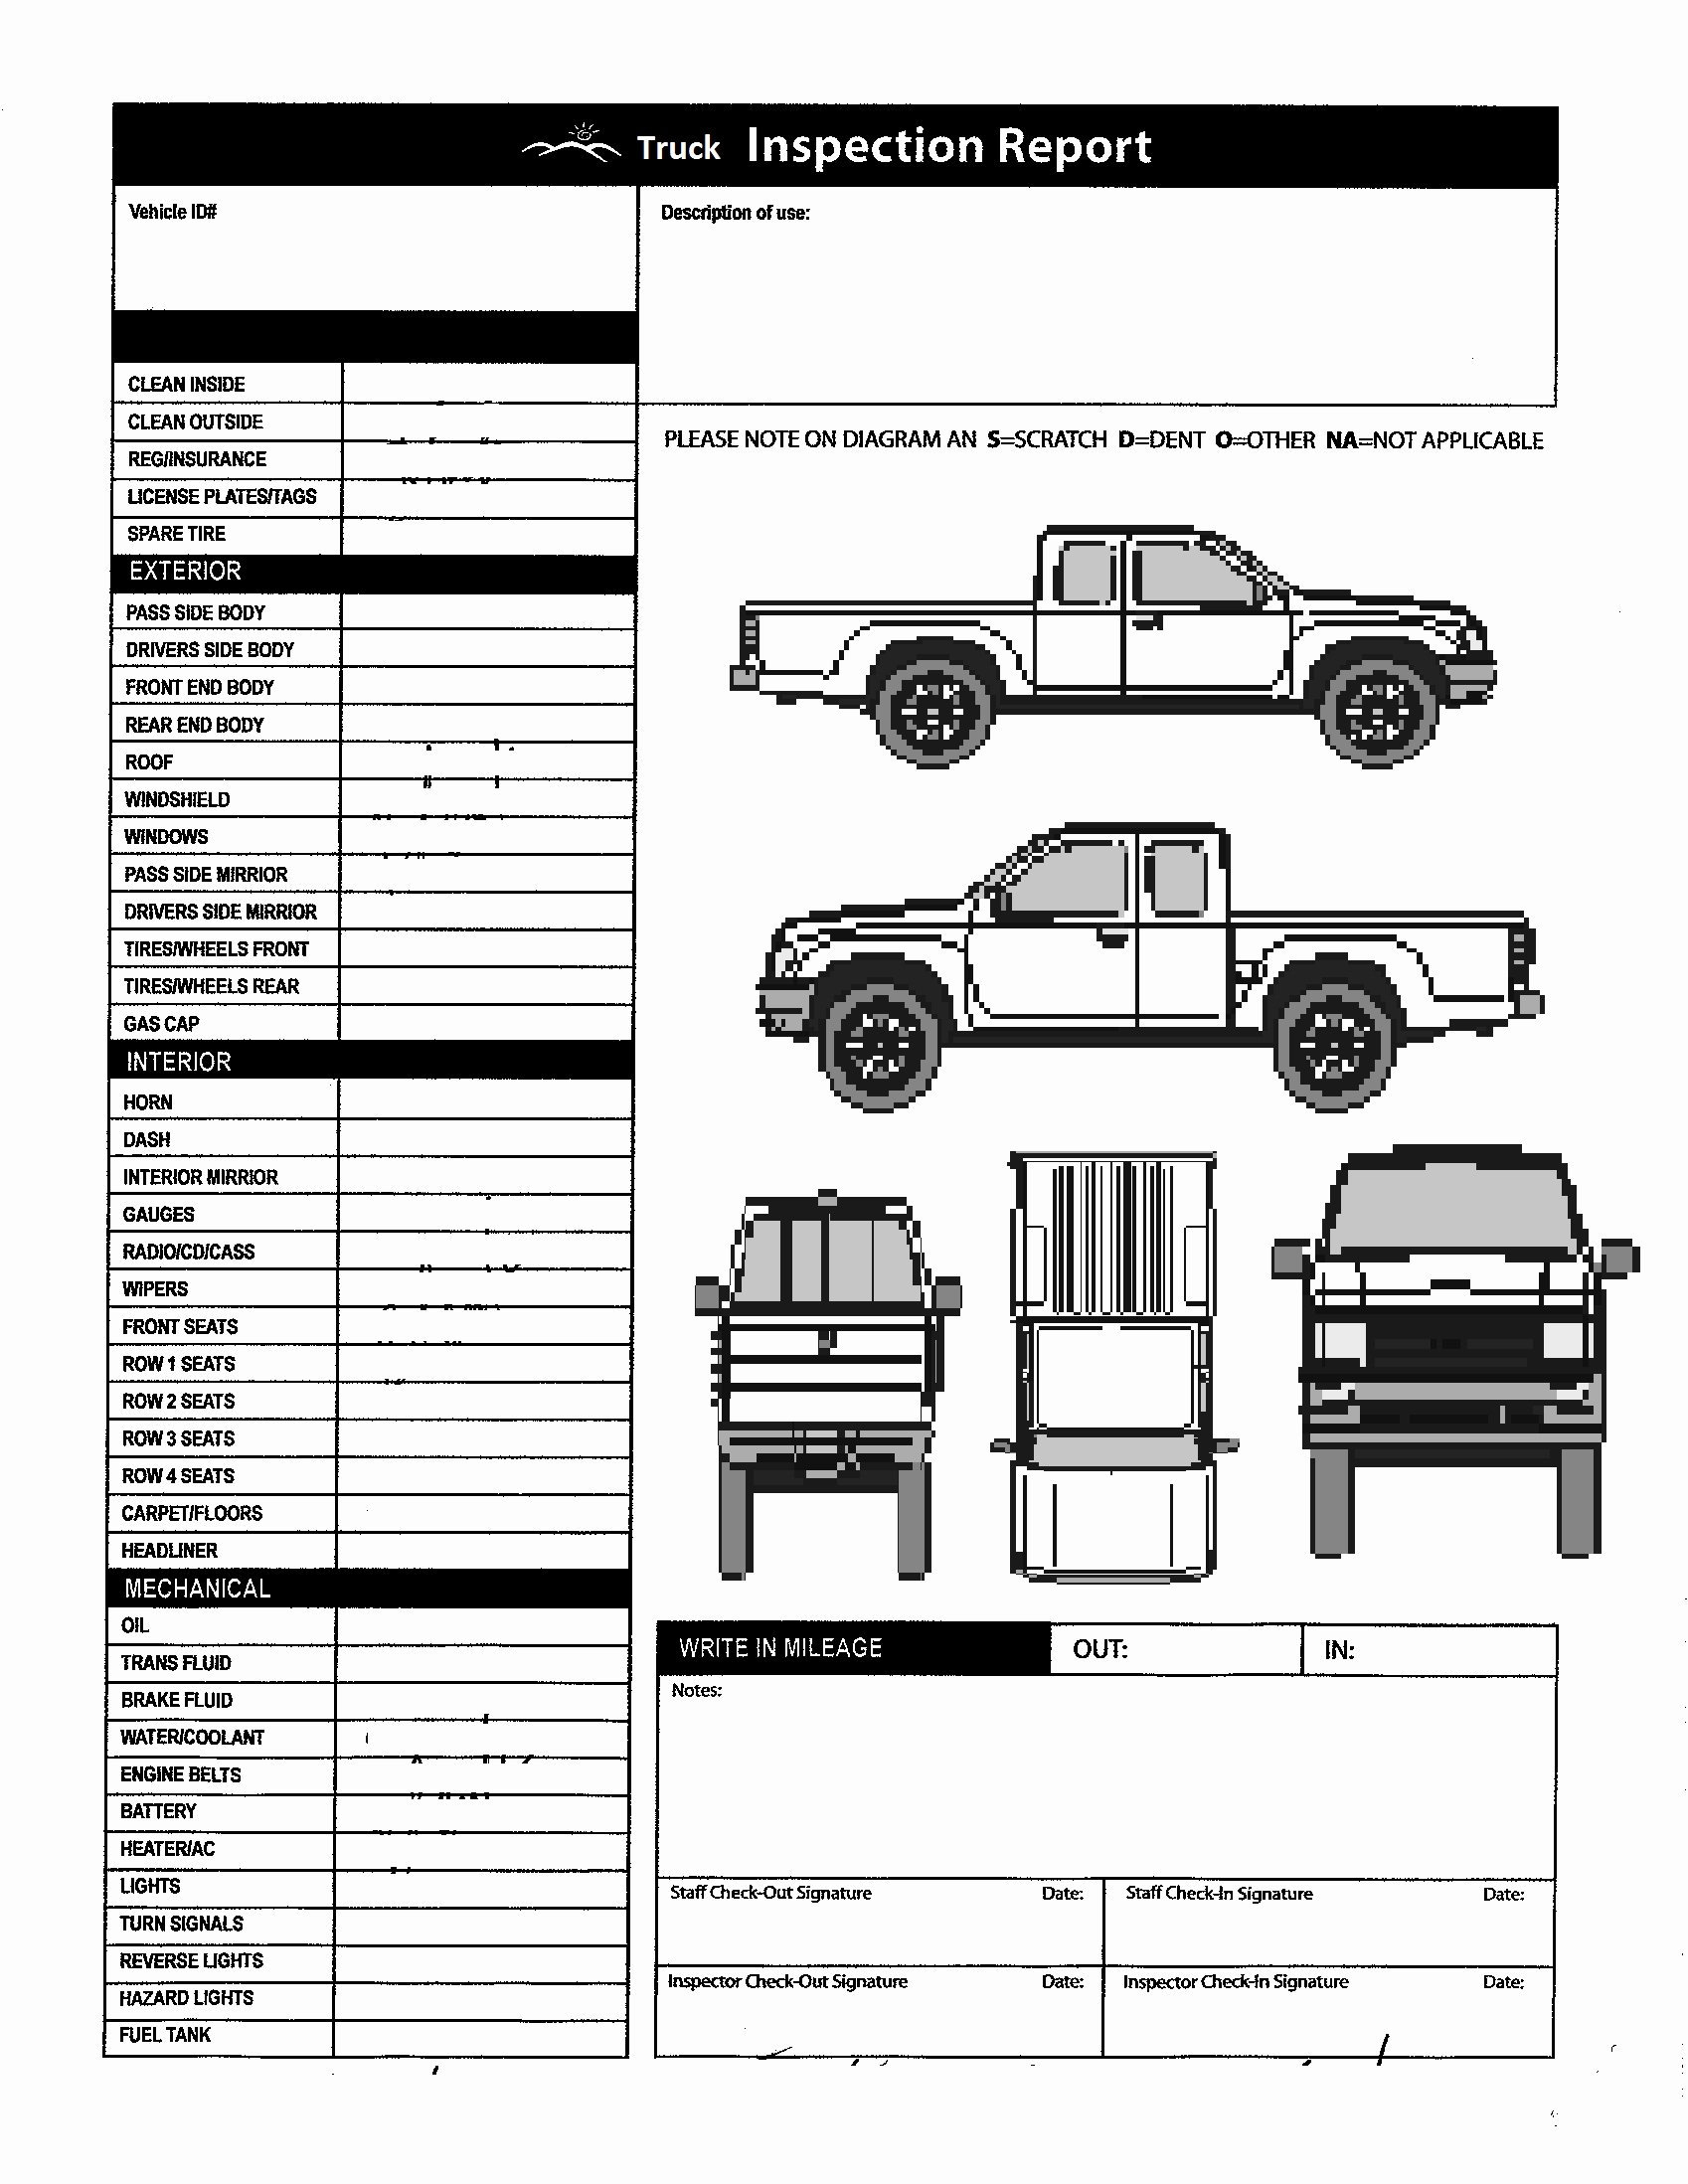 Vehicle Inspection Checklist Template Fresh Checklist Printable Vehicle Inspection Checklist Template